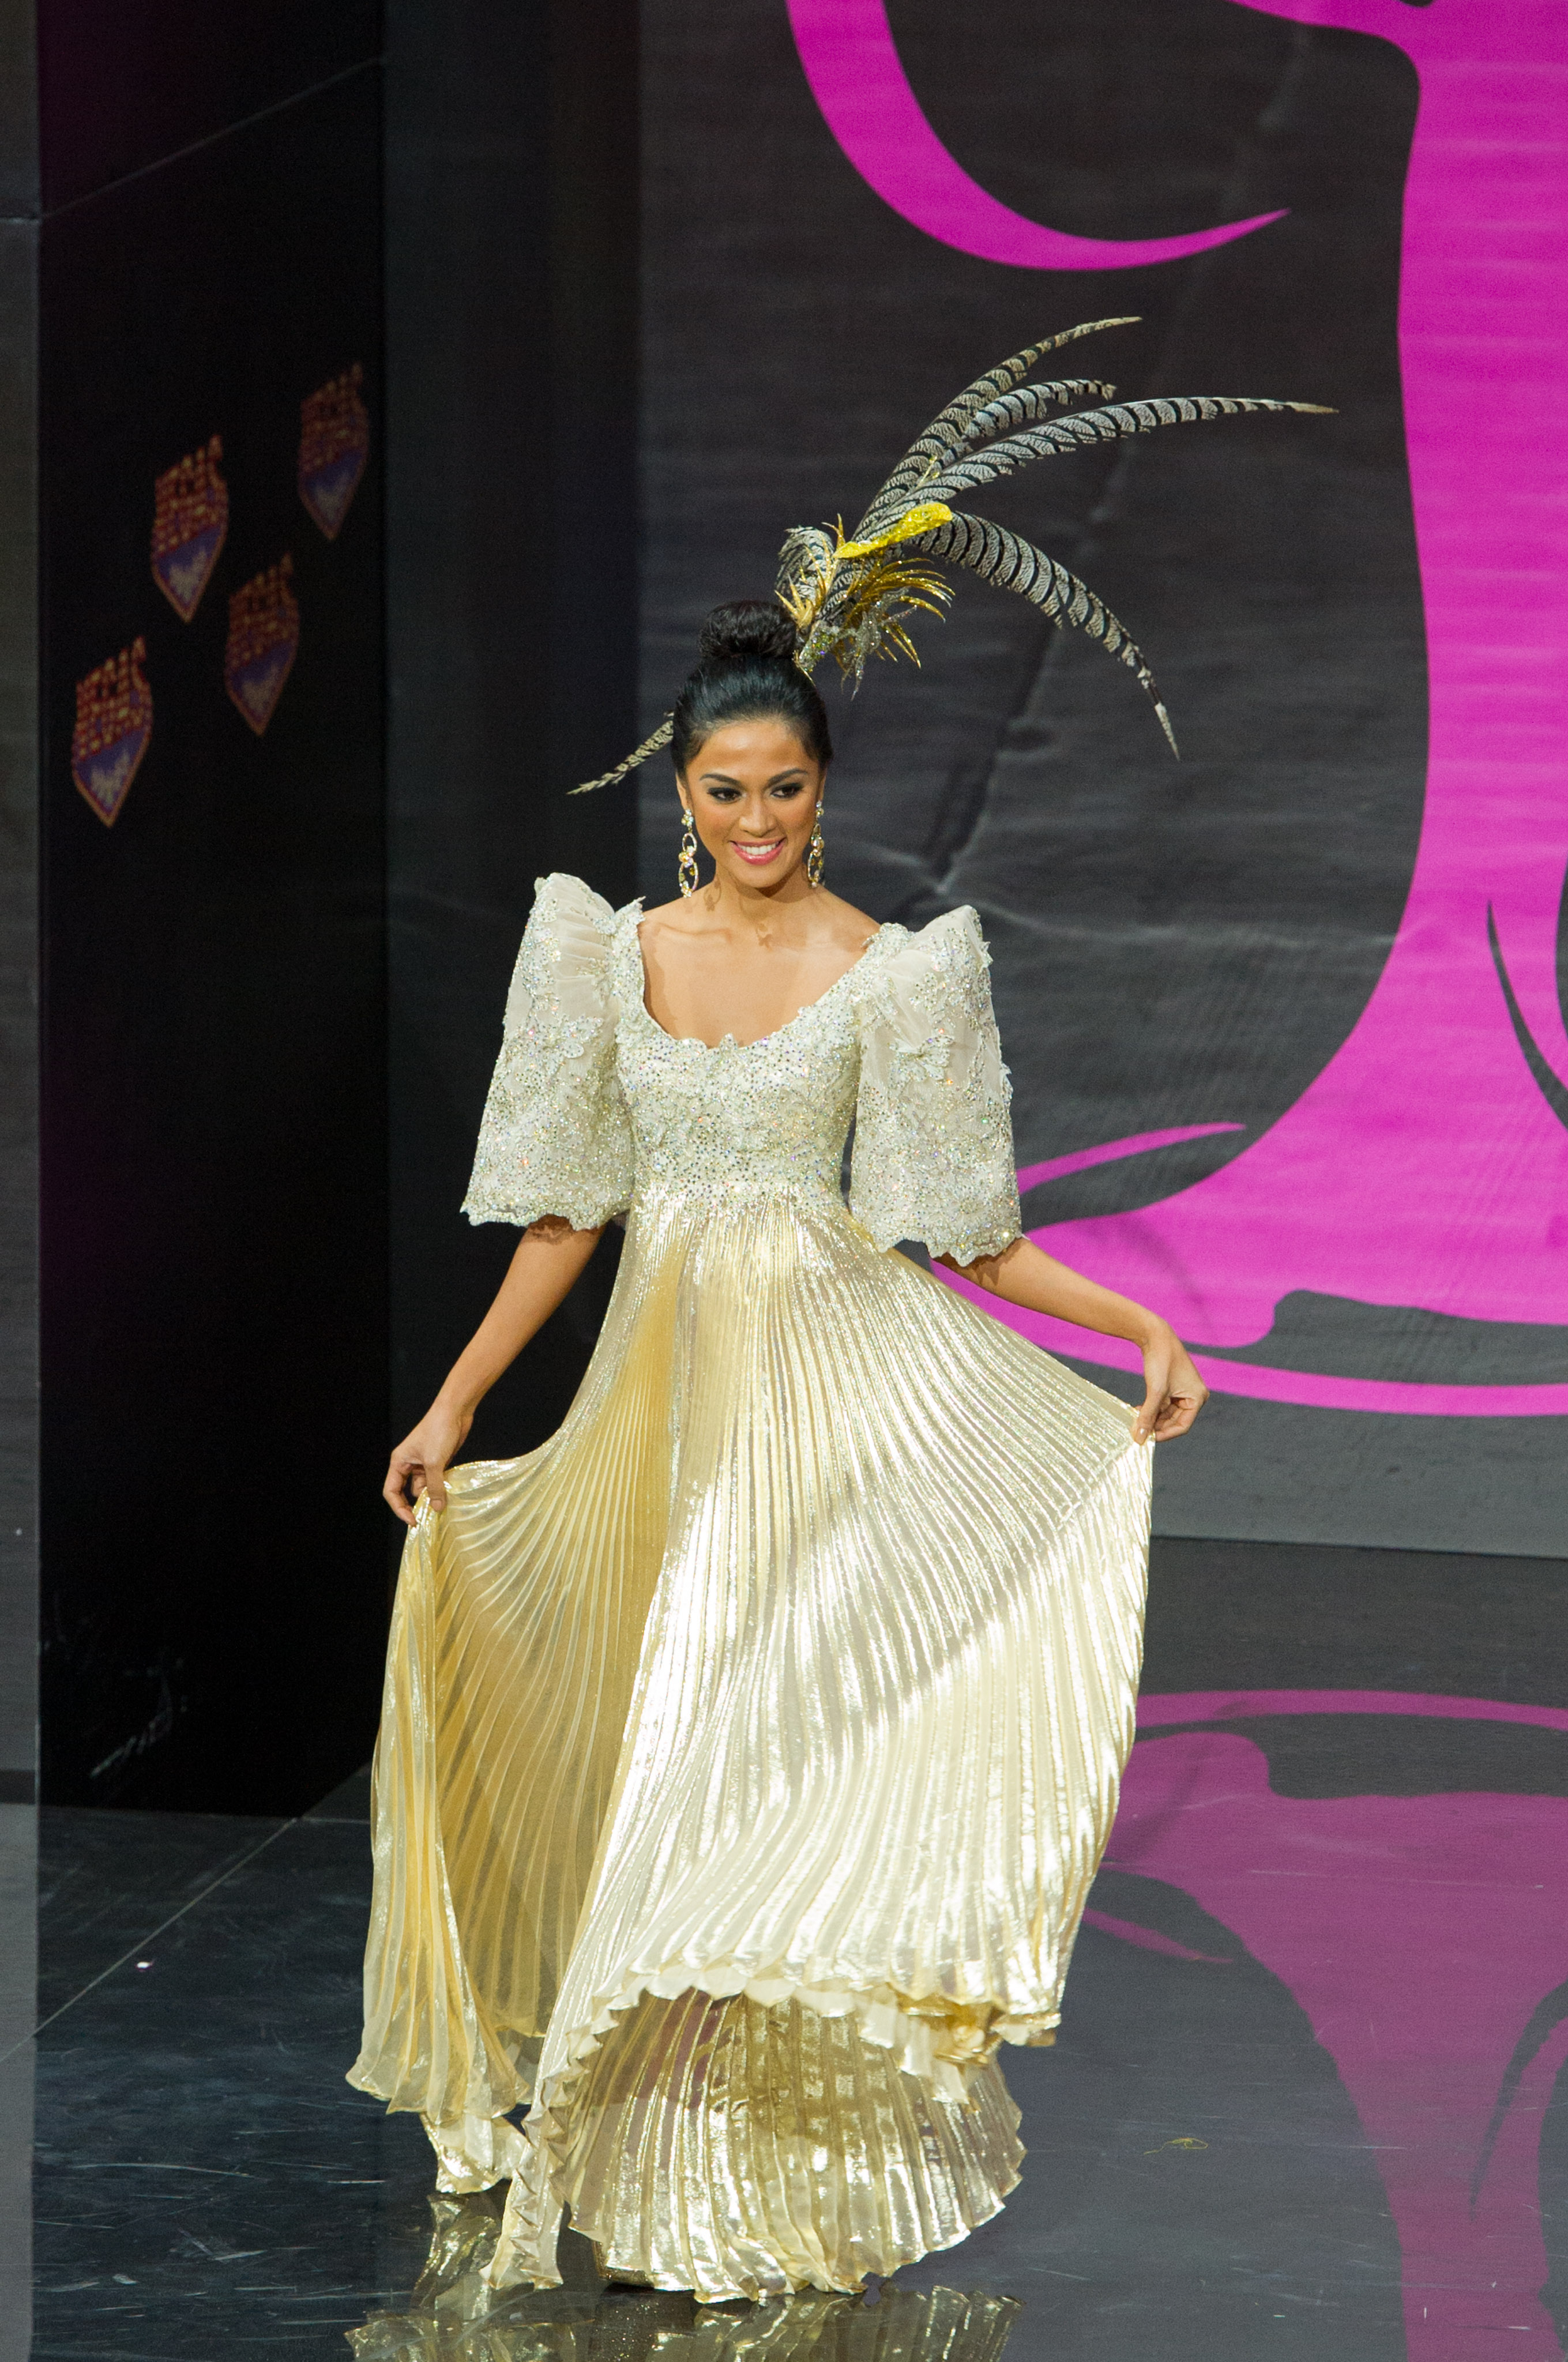 IN PHOTOS: PH bets' national costumes at the Miss Universe